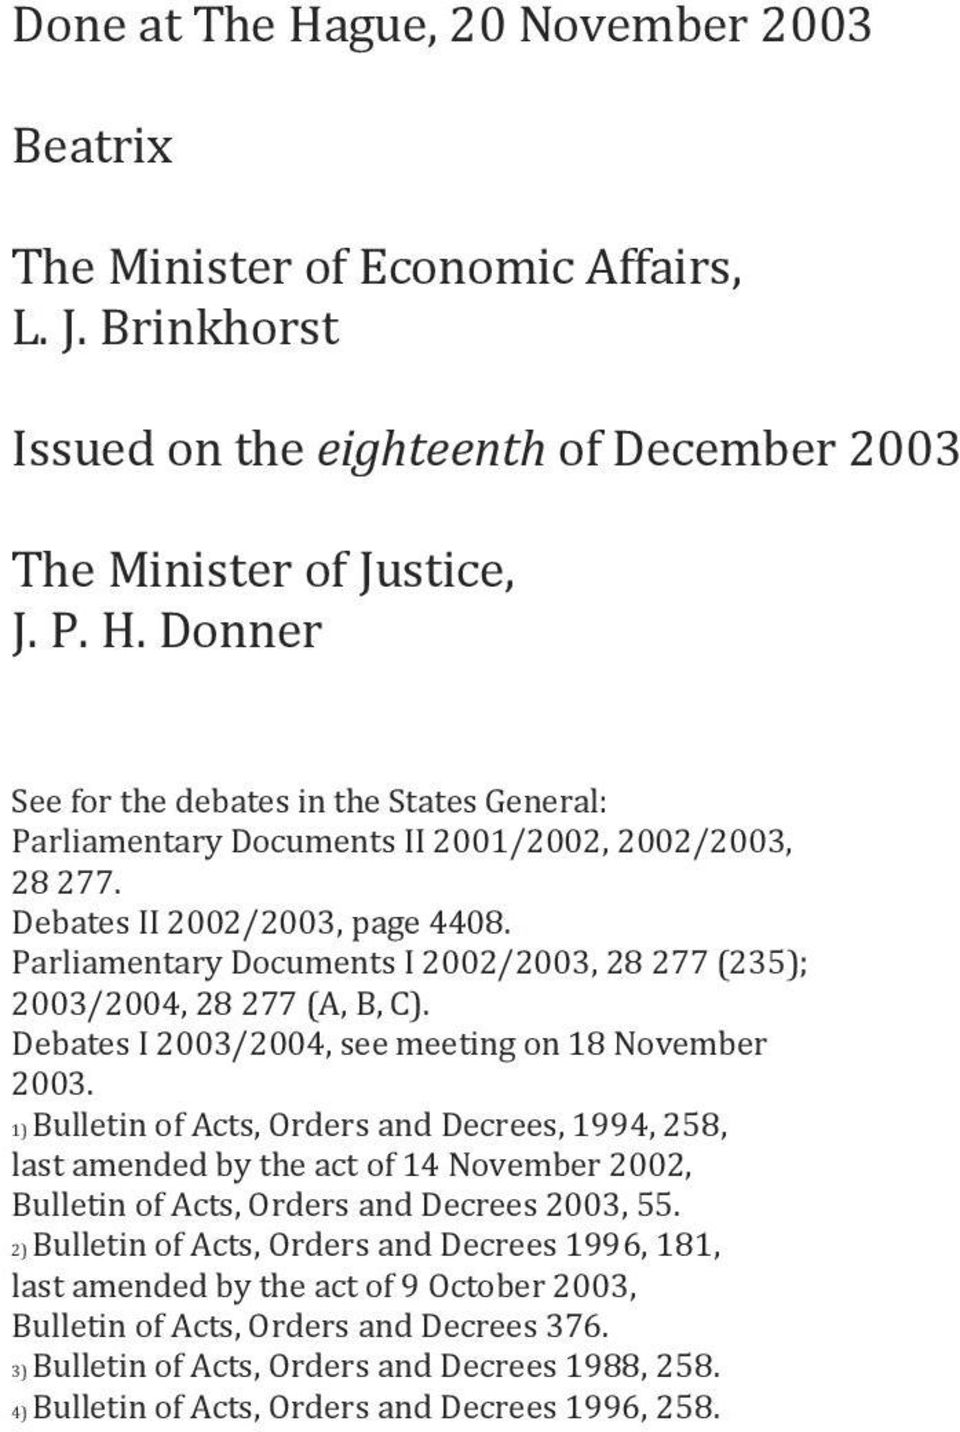 1) Bulletin of Acts, Orders and Decrees, 1994, 258, last amended by the act of 14 November 2002, Bulletin of Acts, Orders and Decrees 2003, 55.